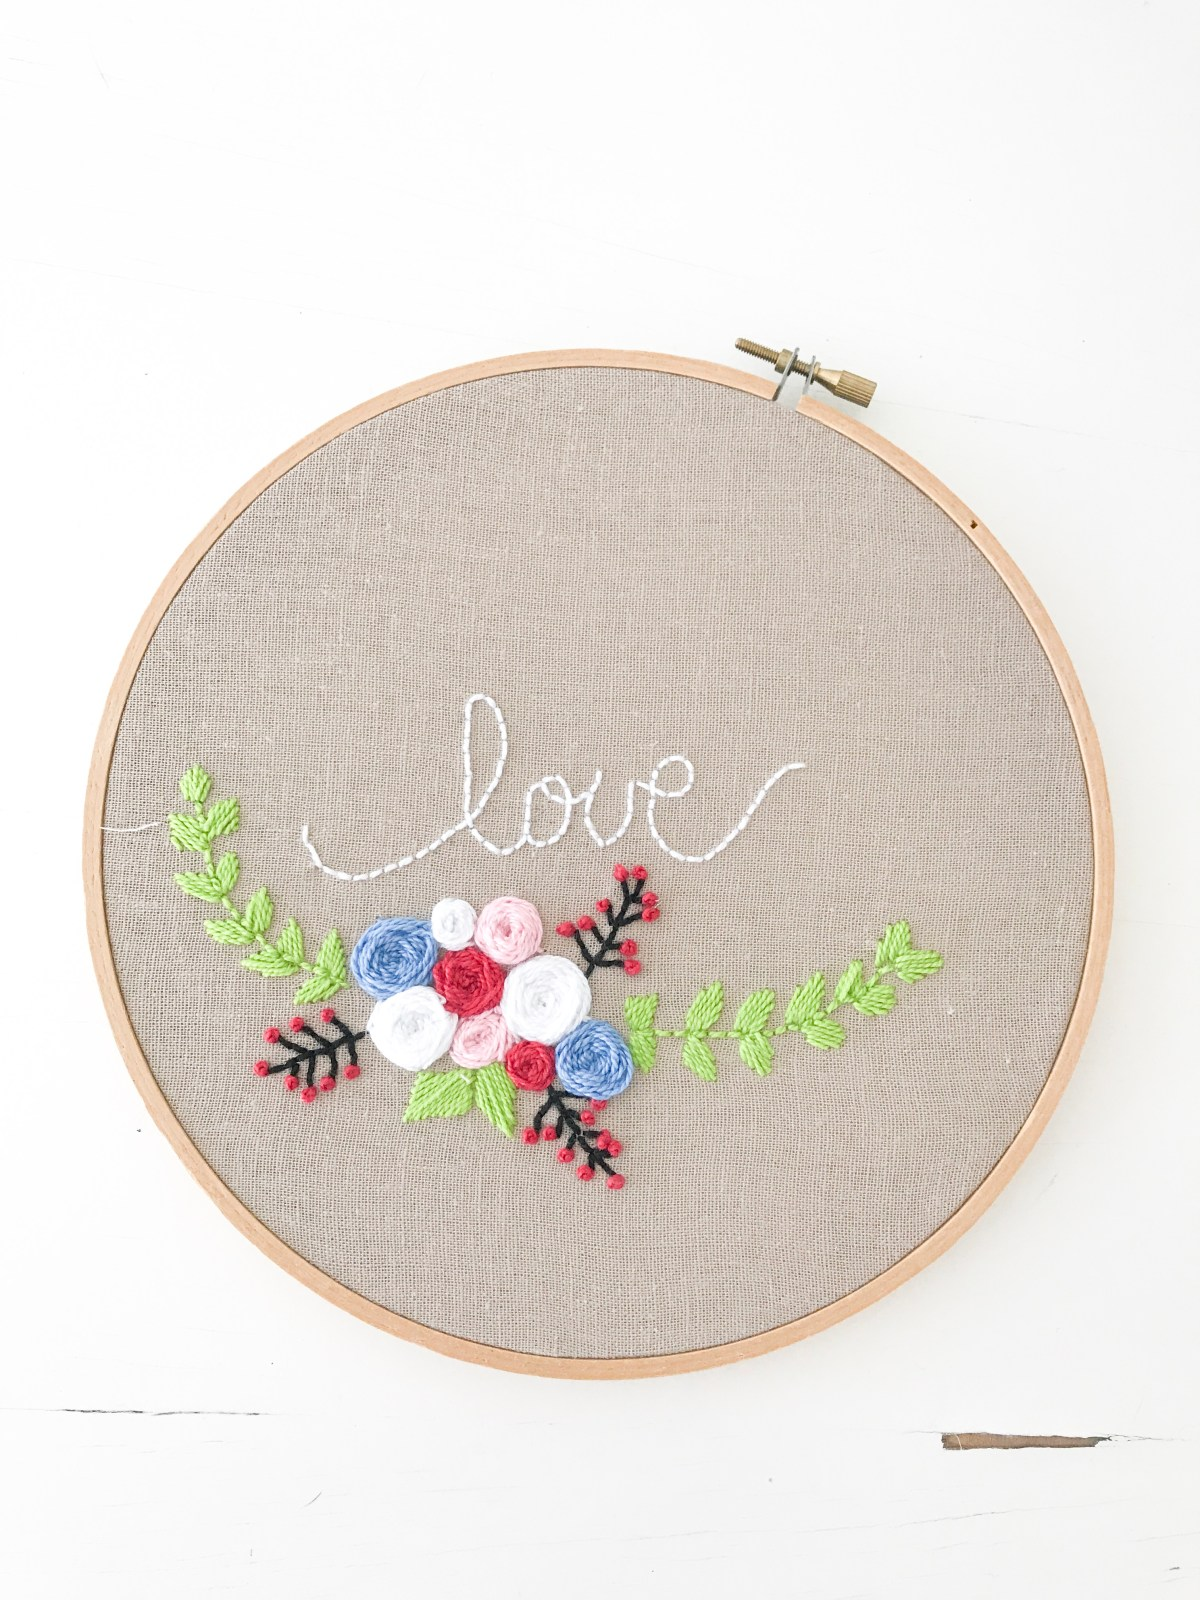 Love Embroidery Pattern finished